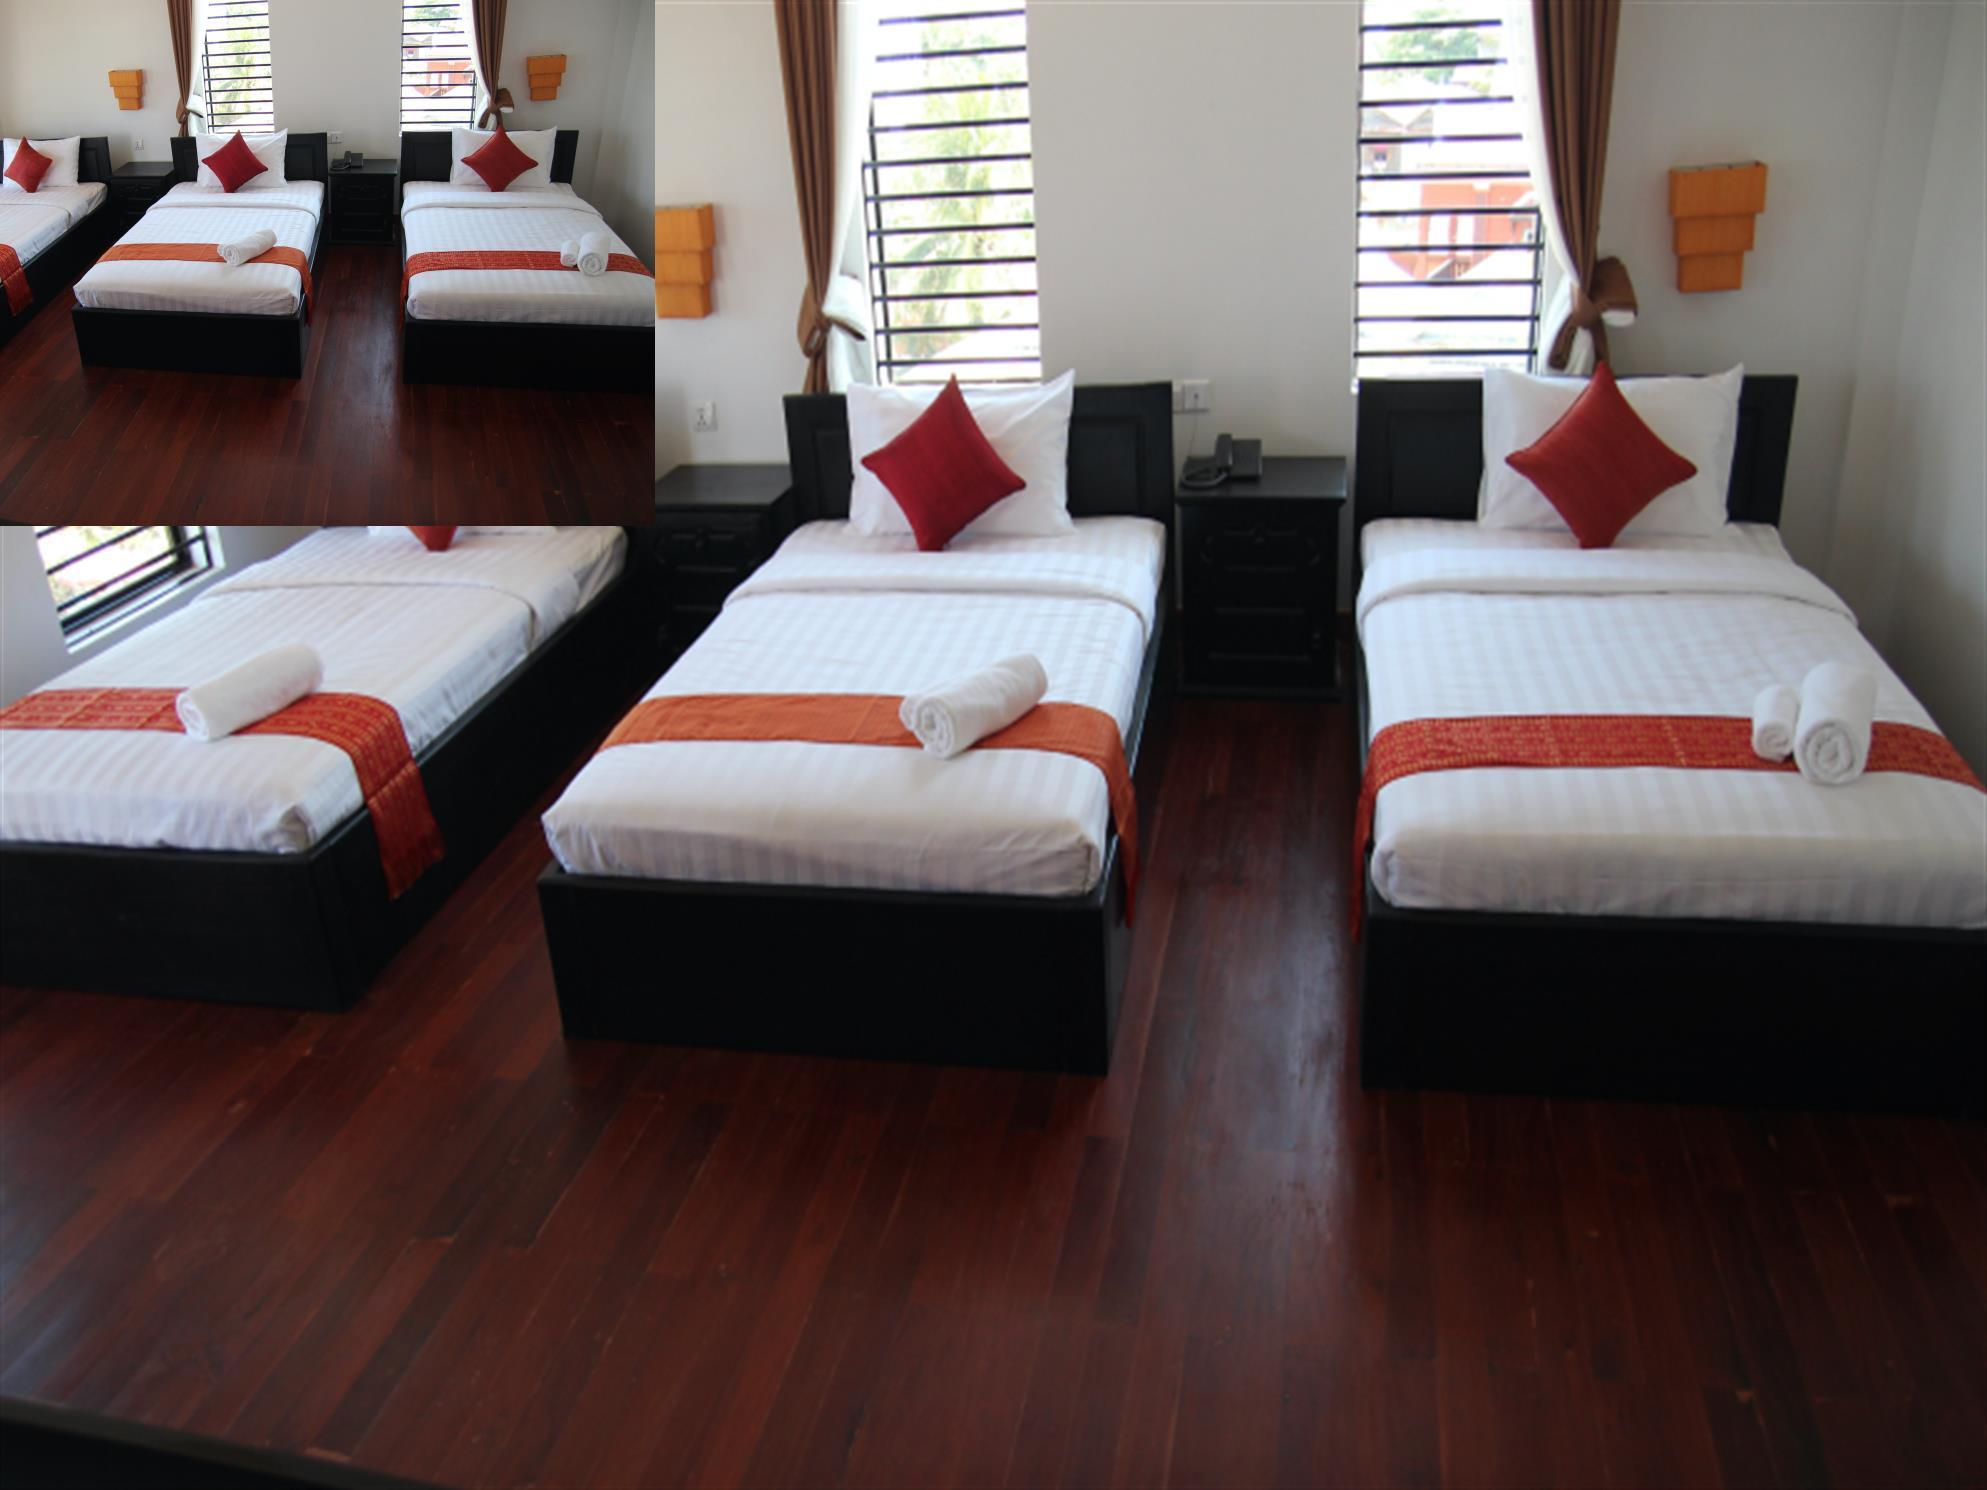 Deluxe Triple Room with Balcony and City View